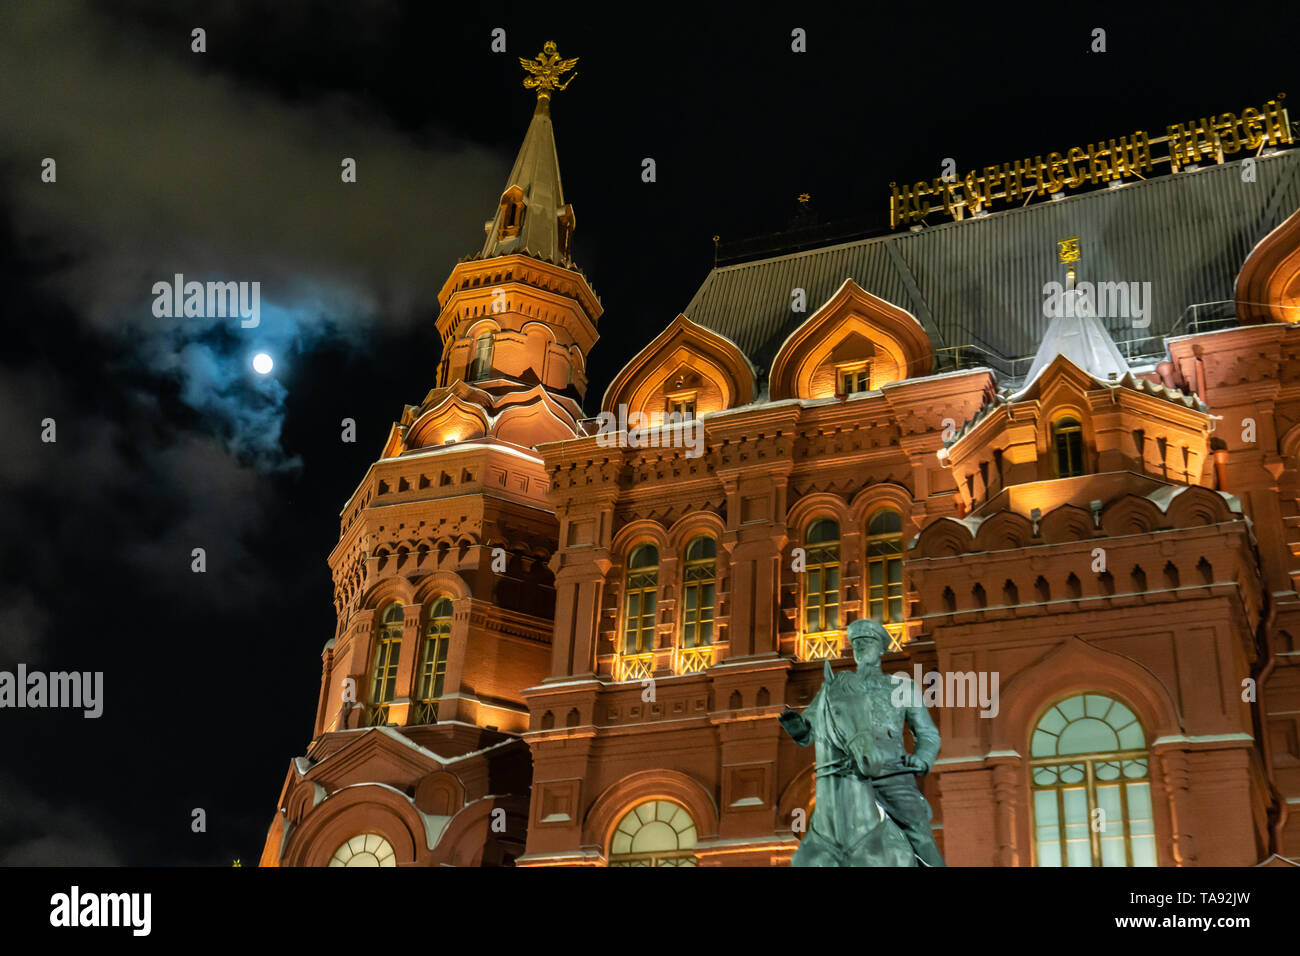 History Museum at the Red Square nighttime in Moscow, Russia - Stock Image